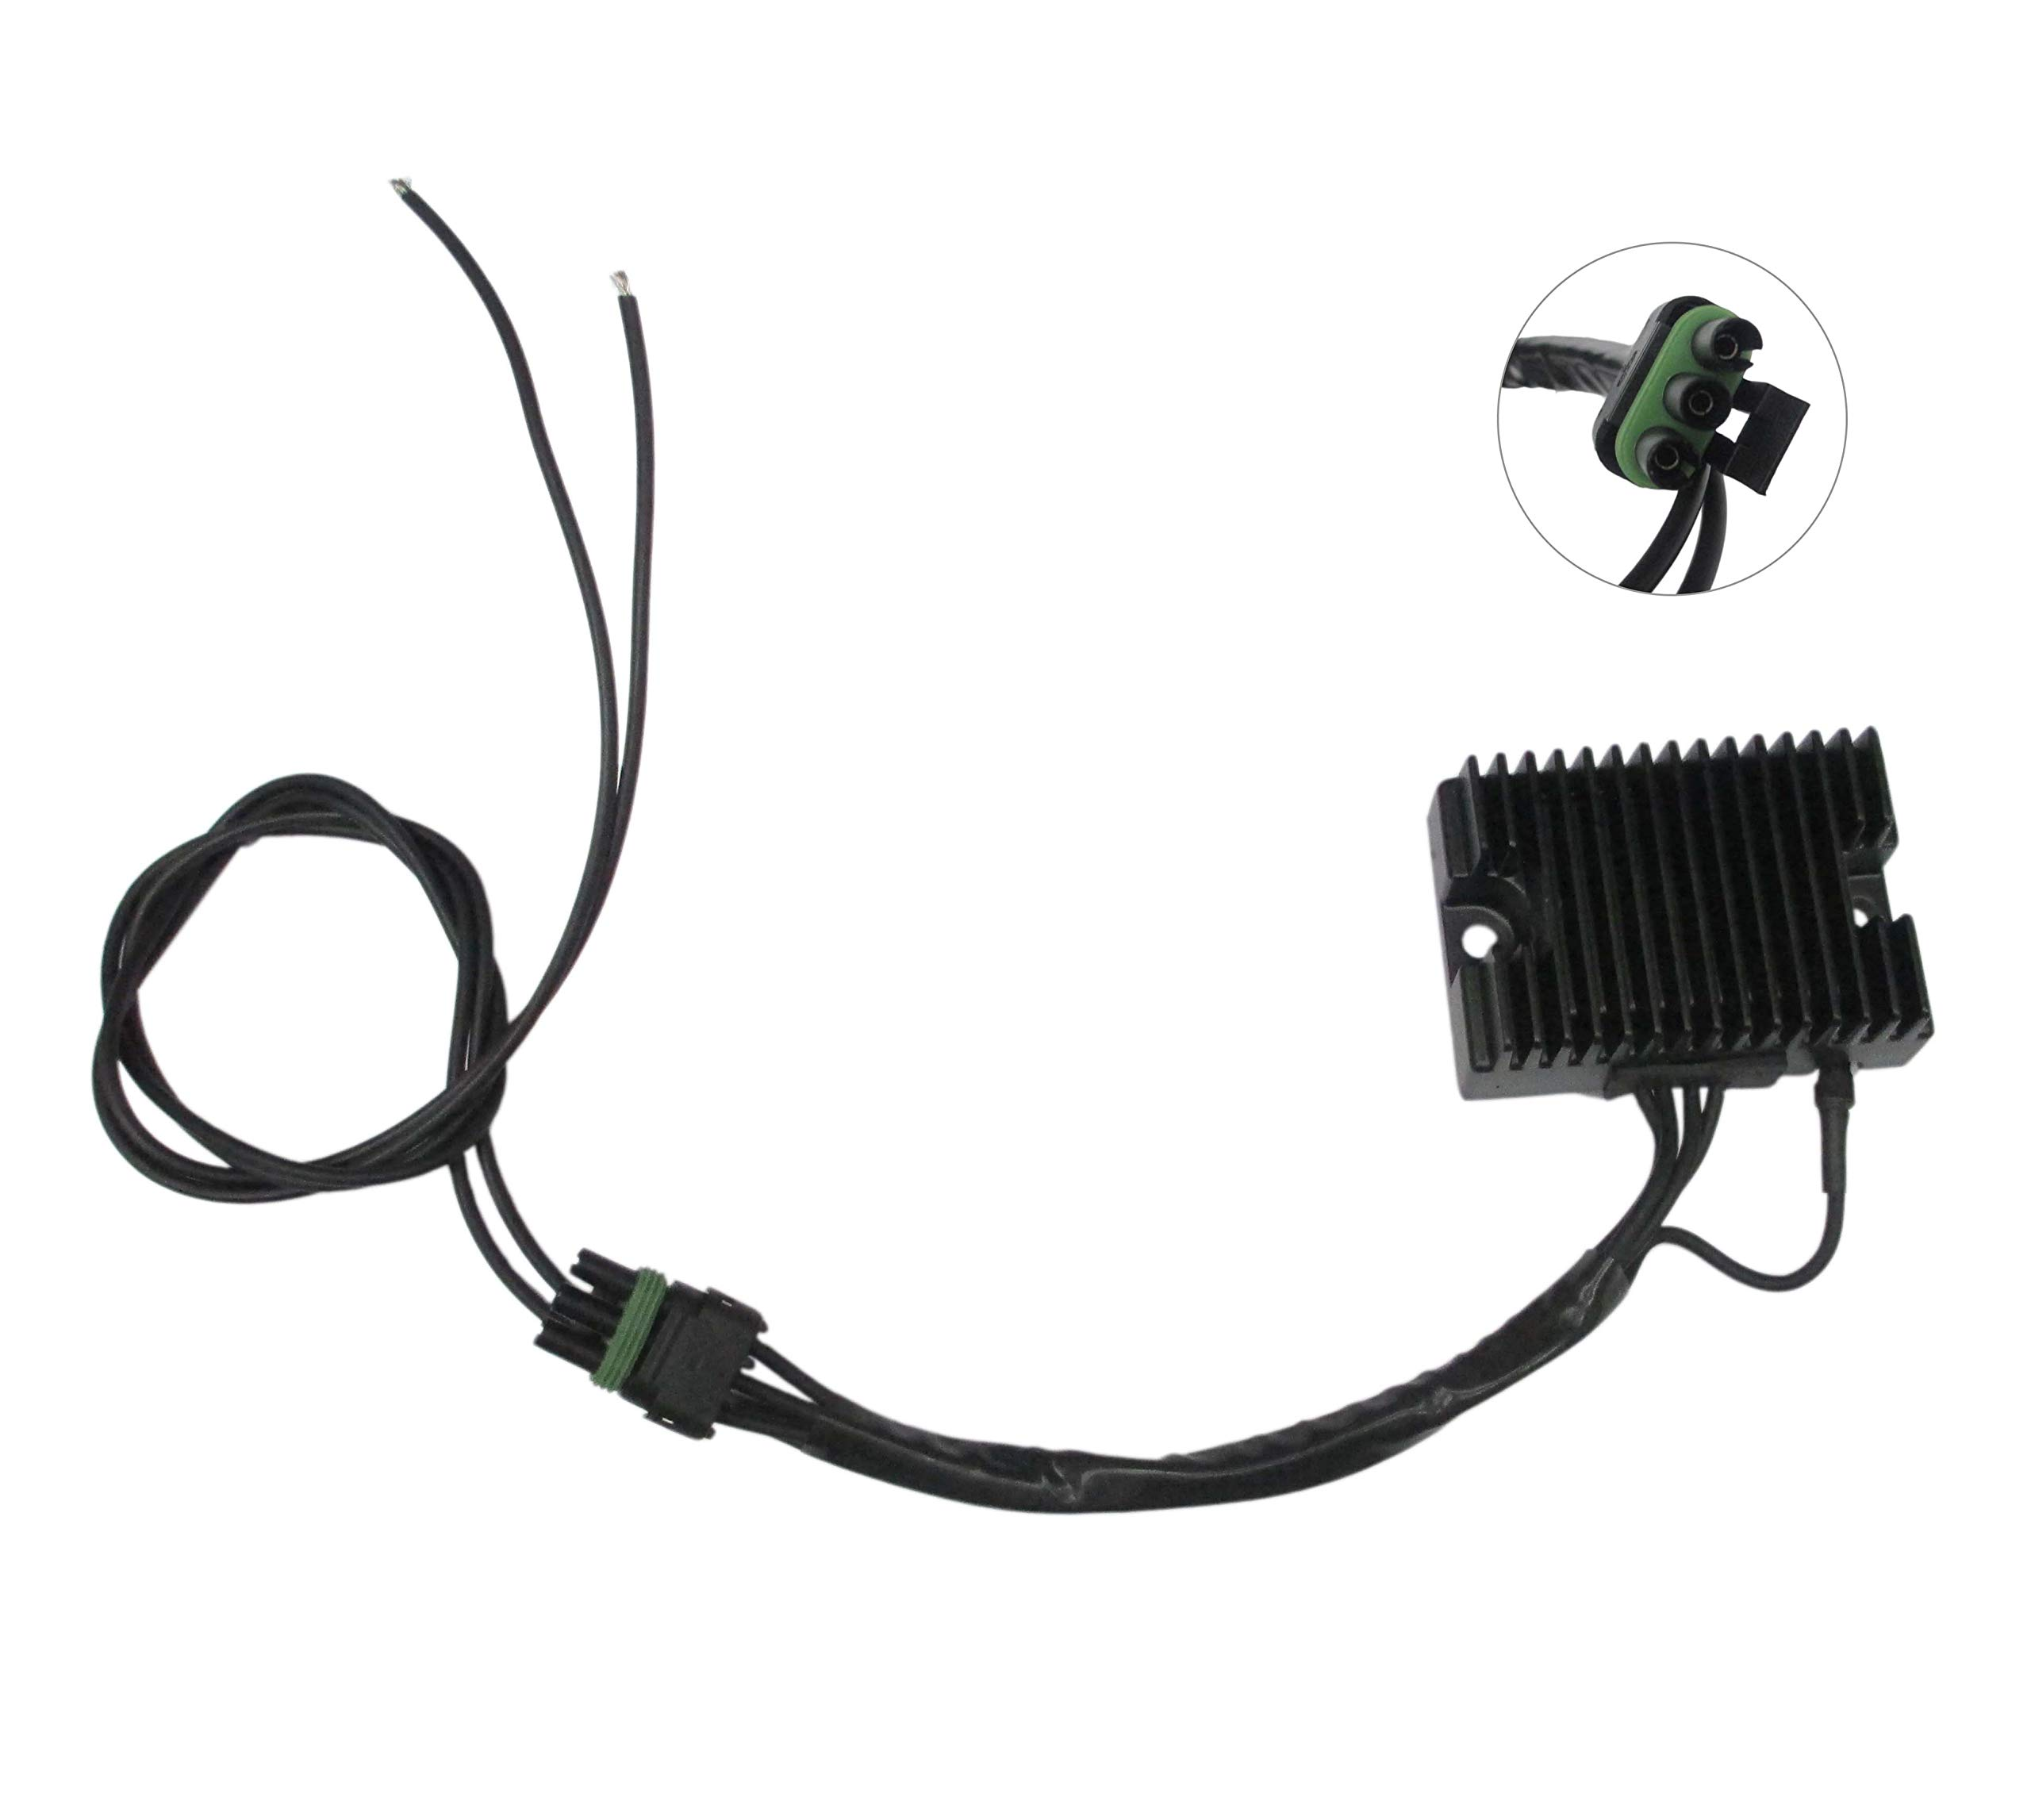 Voltage Regulator Rectifier for Compu-Fire 40A 55402 3-Phase Charging Systems 60-3337